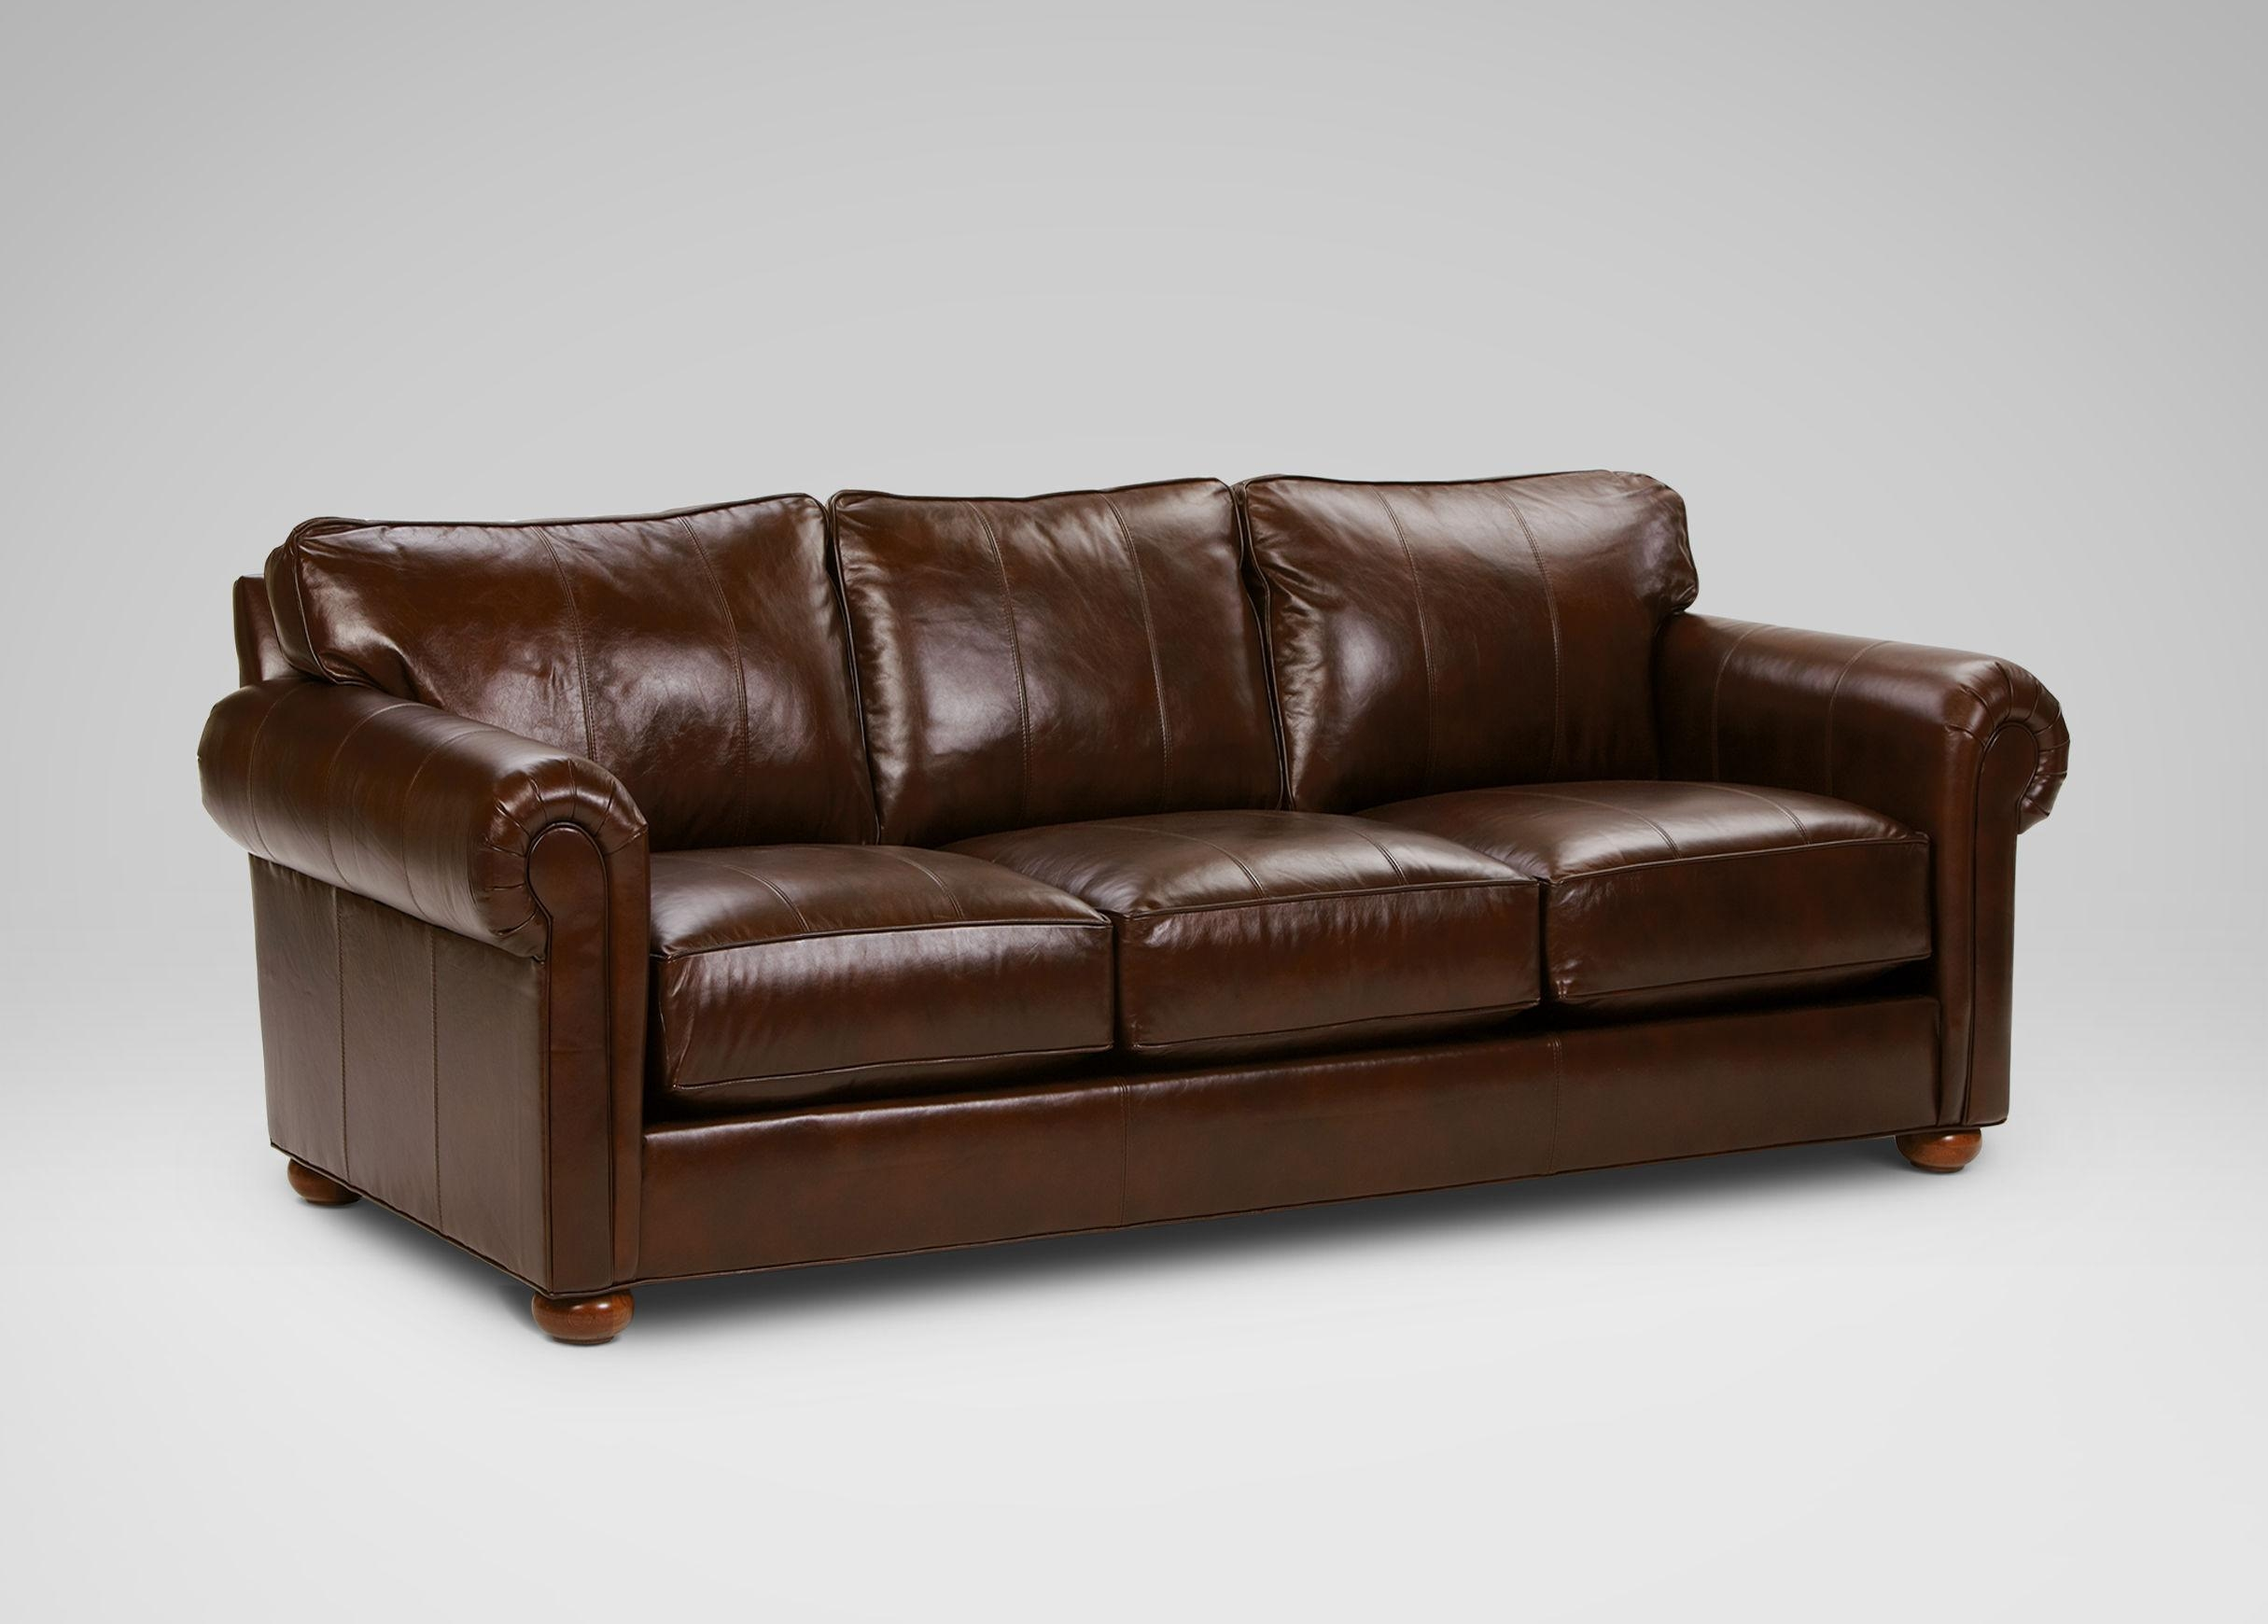 Costco Leather Sofa (Image 1 of 20)